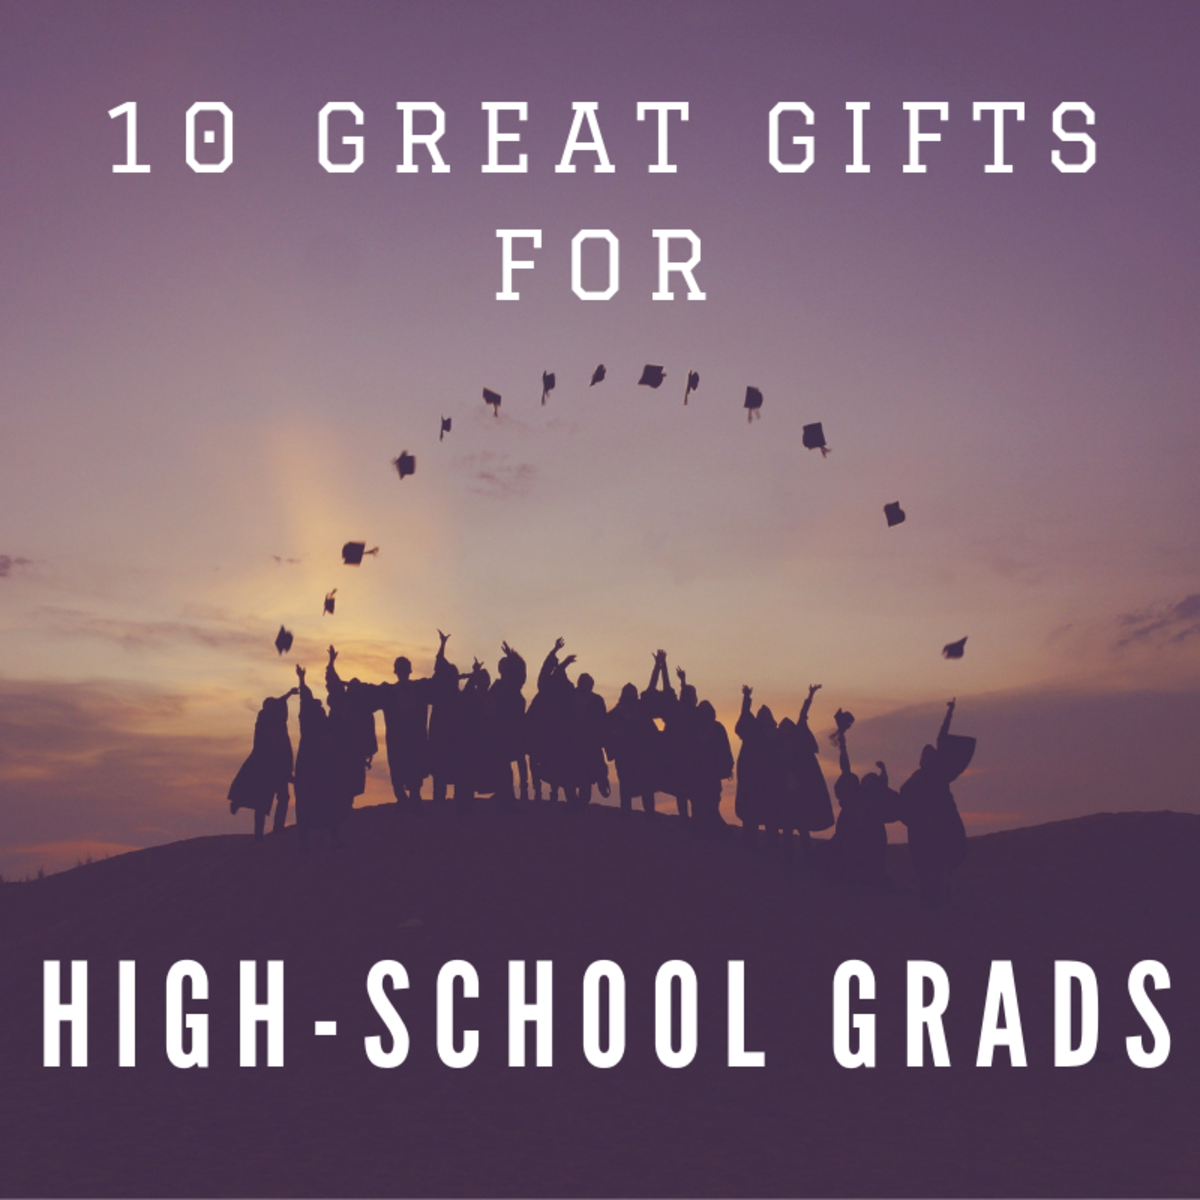 Here are 10 unique high-school graduation gift ideas you may not yet have considered.